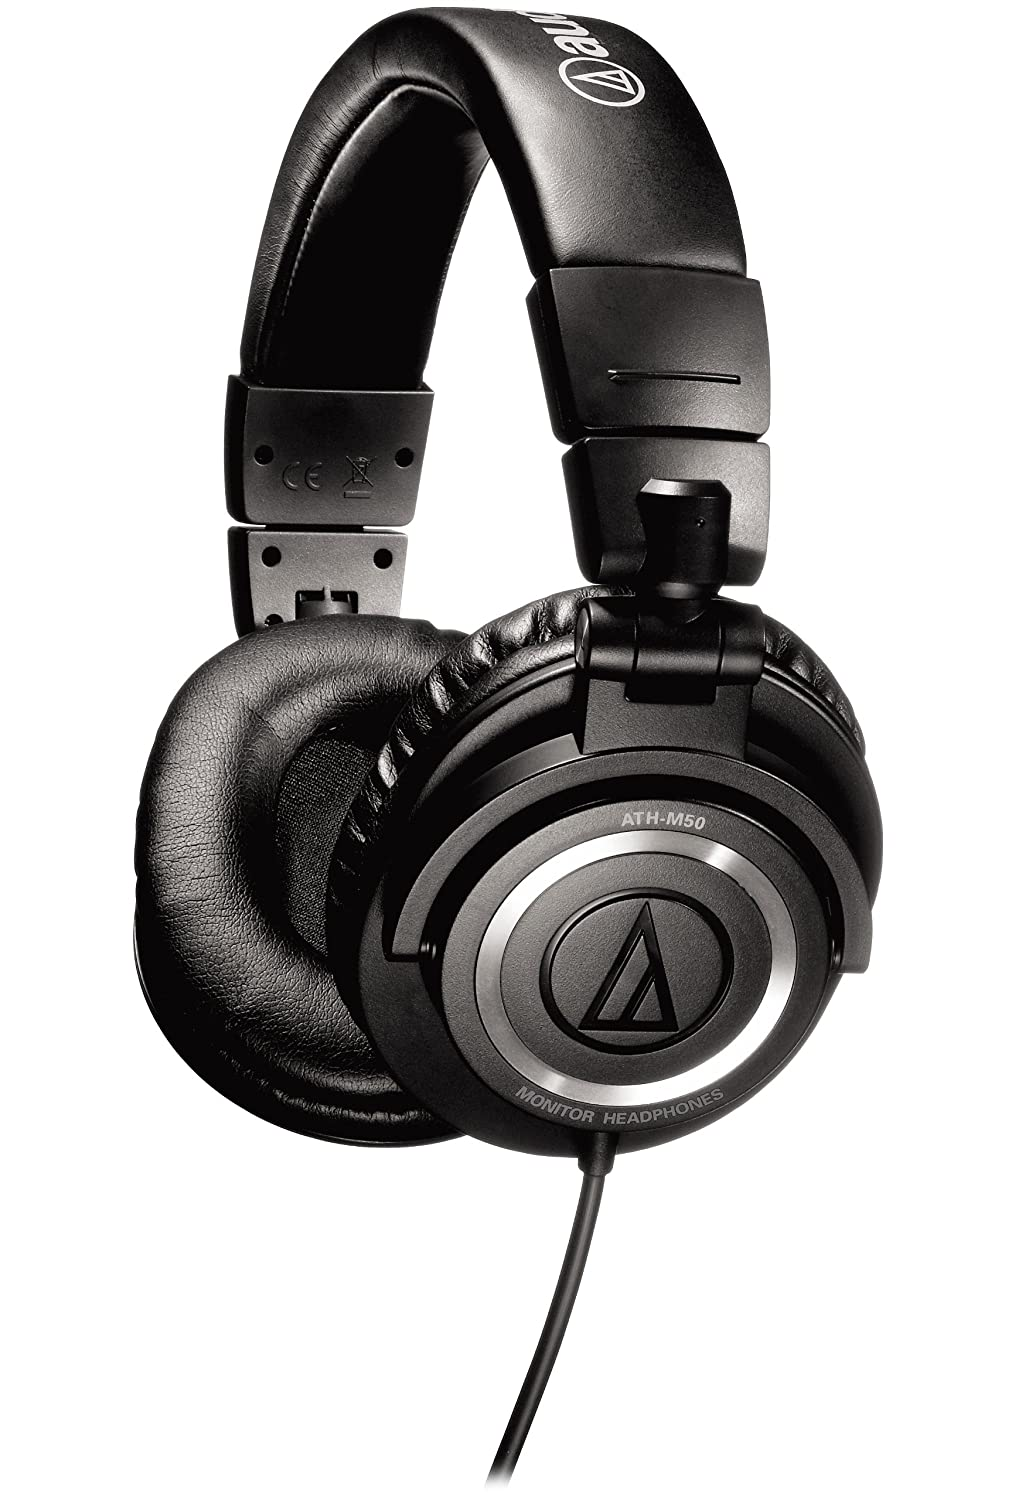 Audio-Technica ATH-M50S Professional Studio Monitor Headphones $104.99 (Today Only)